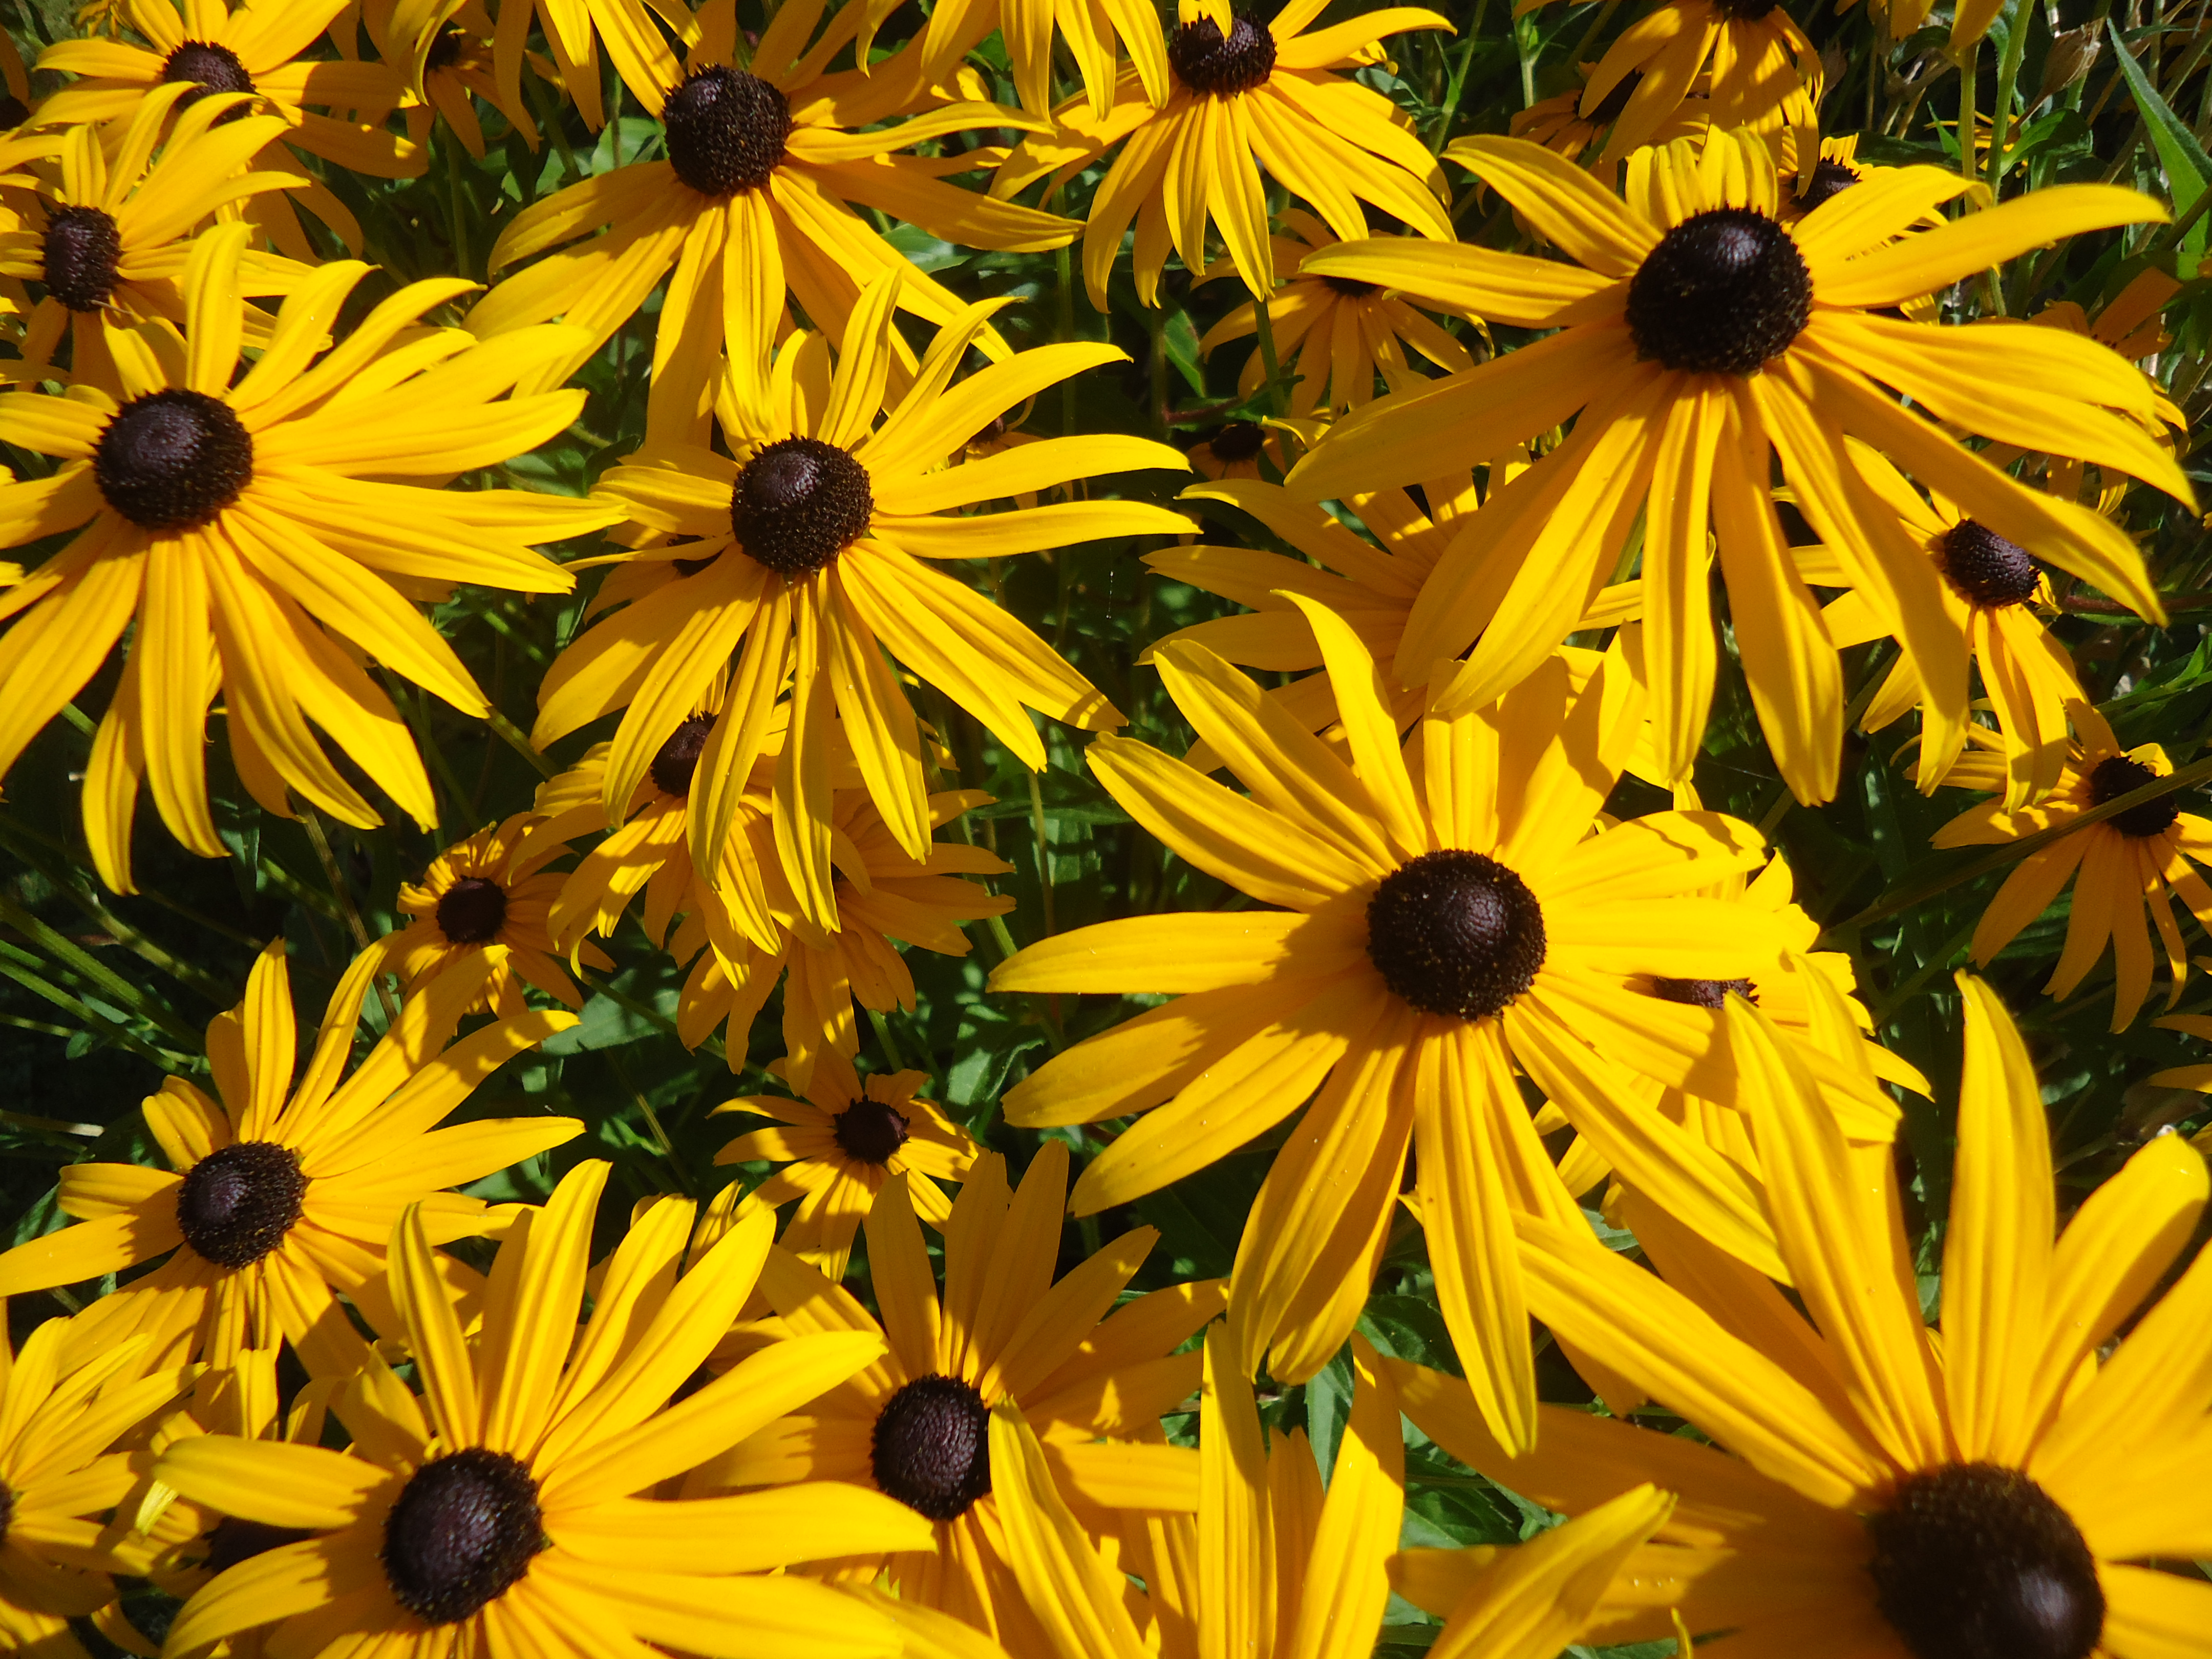 Fridays flowers fragrance colour in the garden that bloomin garden i couldnt resist another shot of the rudbeckia in the garden its a show stopper for sure i cant get enough of the bright yellow flowers i may need to mightylinksfo